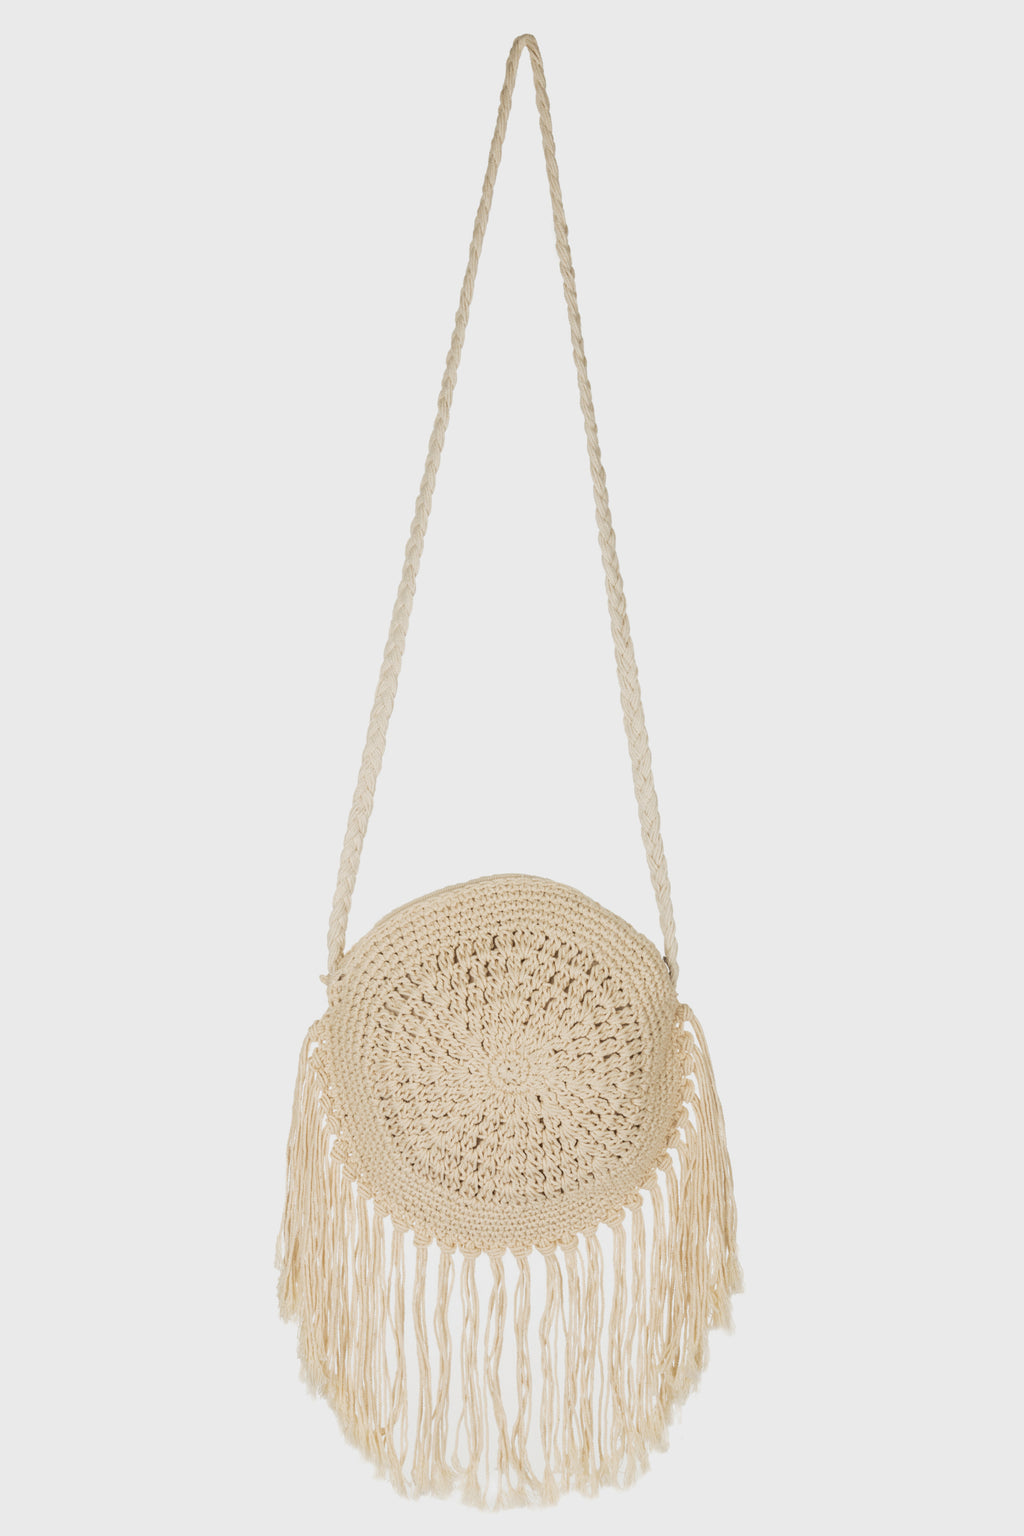 Circular Zip Top Cotton Crochet Crossbody (BSB3752)-CROSSBODY-BaySky